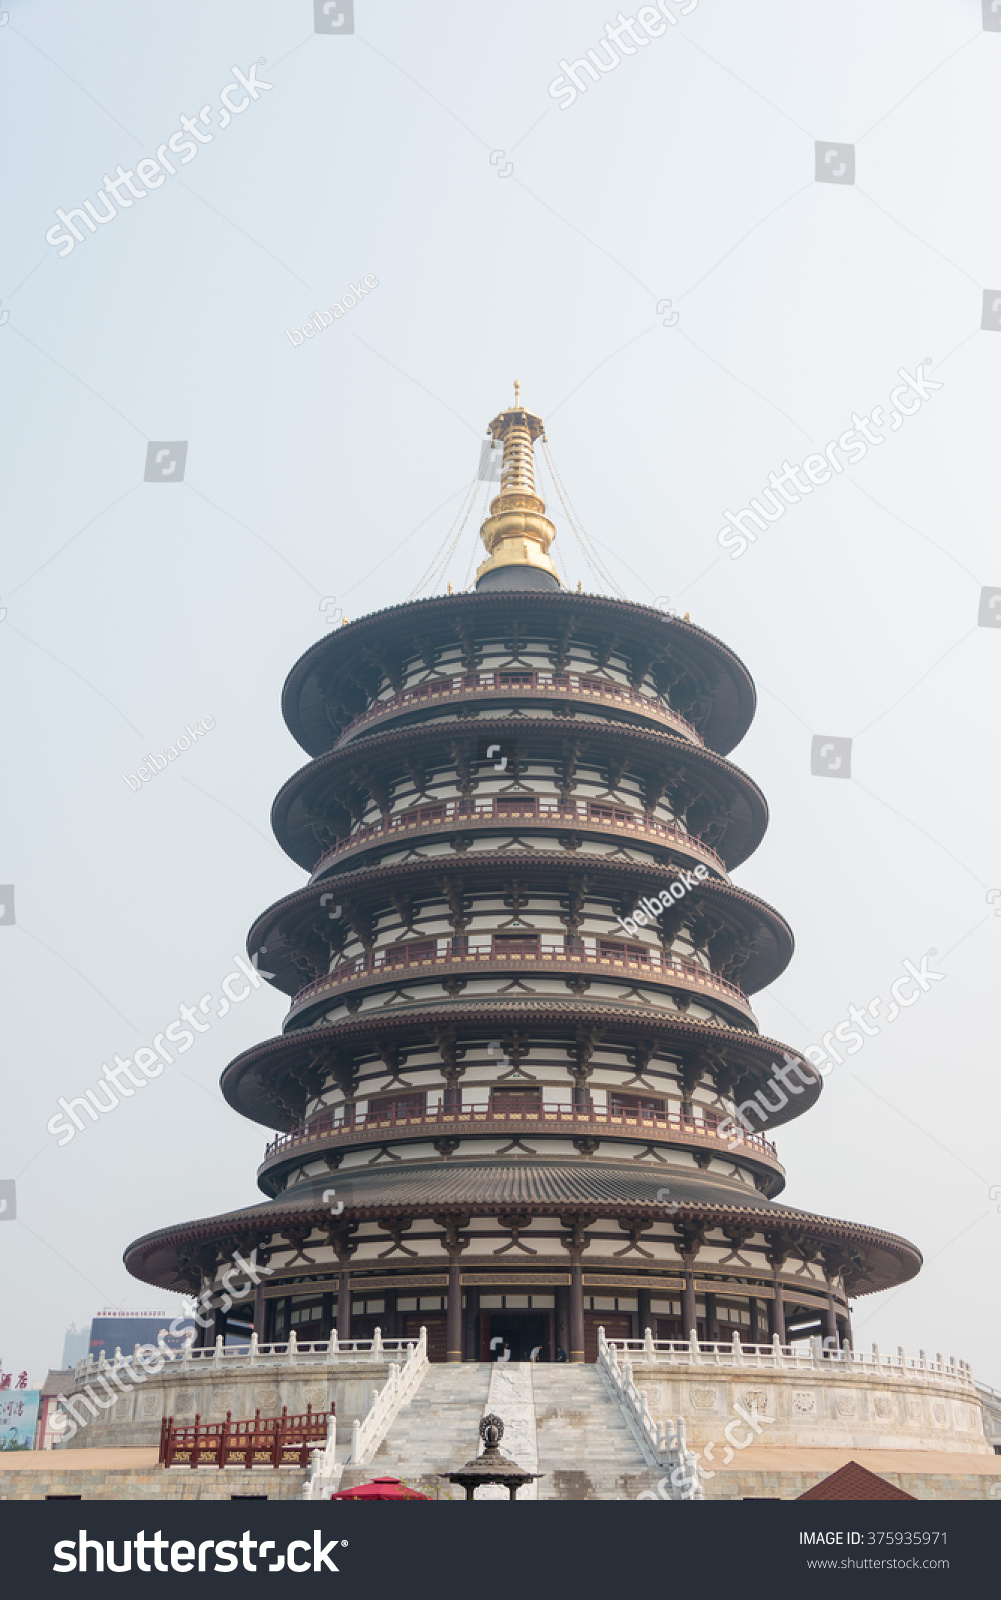 Henan china jul 07 2015 sui stock photo 375935971 shutterstock henan china jul 07 2015 sui and tang dynasty luoyang city national heritage biocorpaavc Choice Image